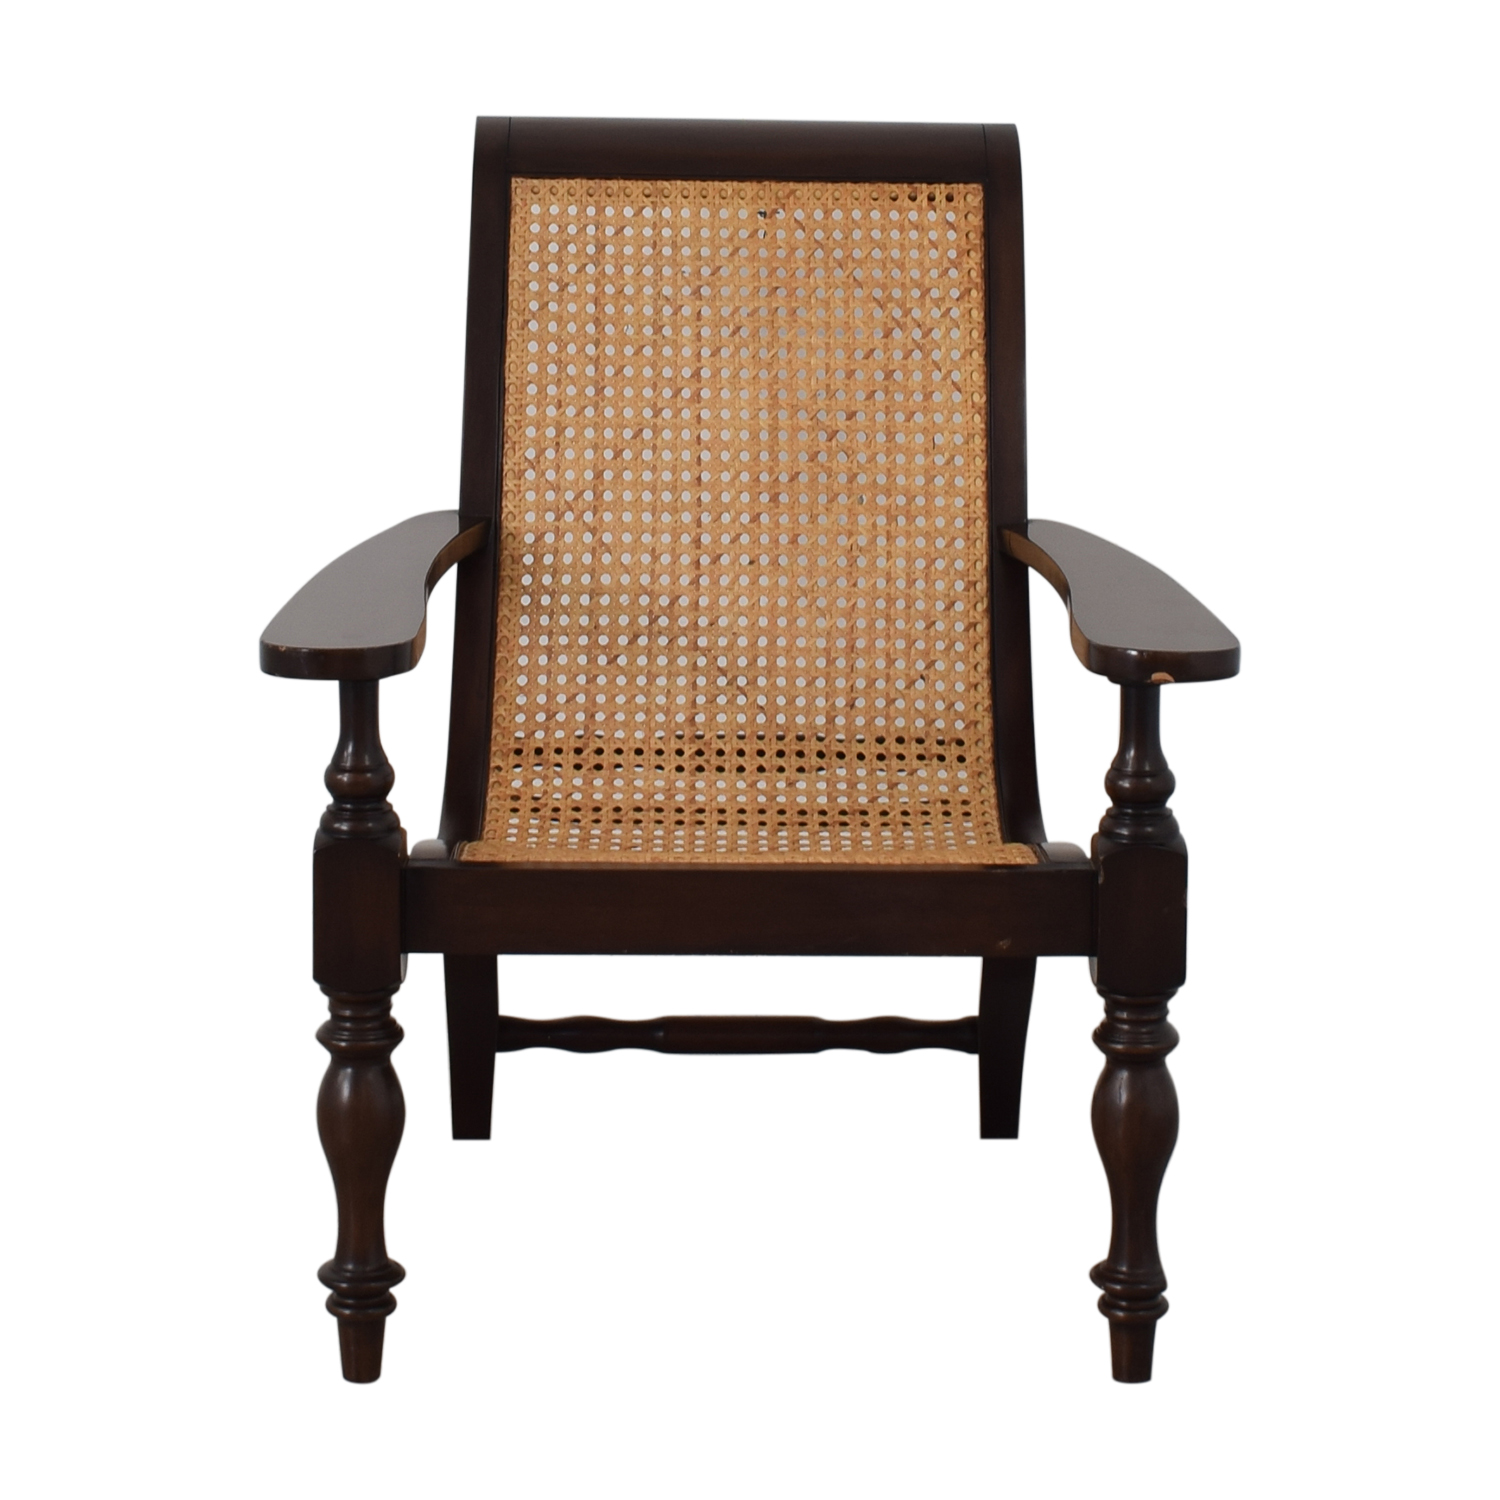 buy Pottery Barn Antique Lounge Chair Pottery Barn Chairs